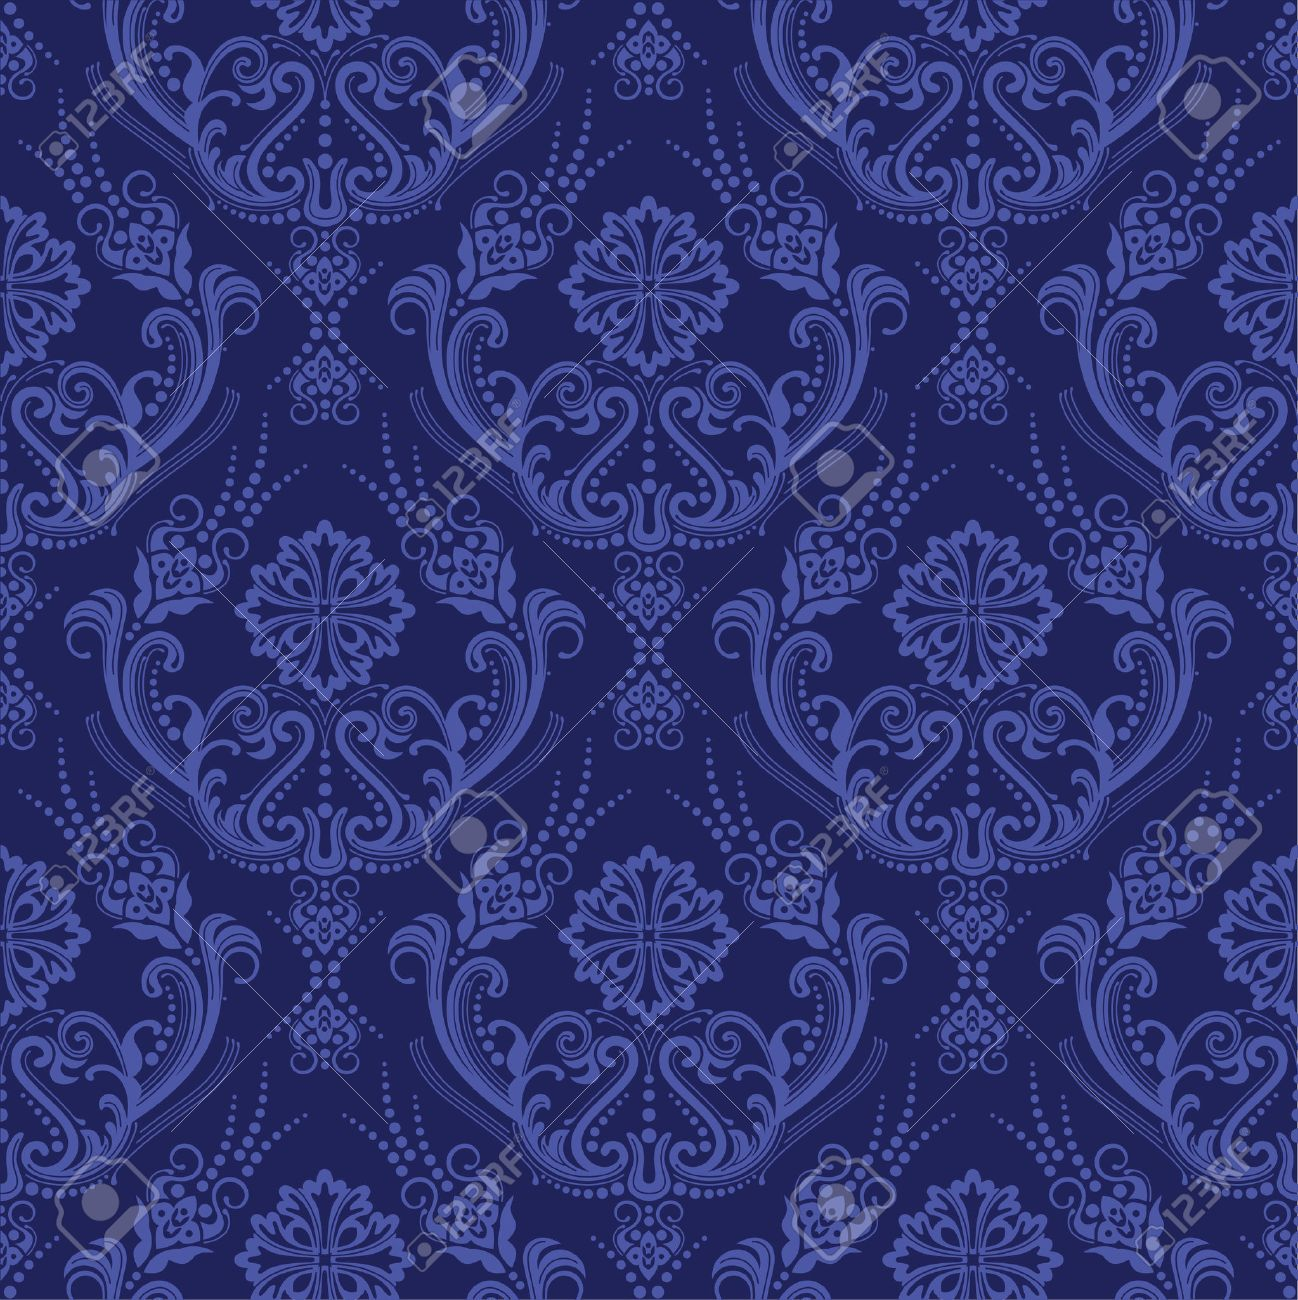 Luxury Blue Floral Damask Wallpaper Royalty Free Cliparts Vectors